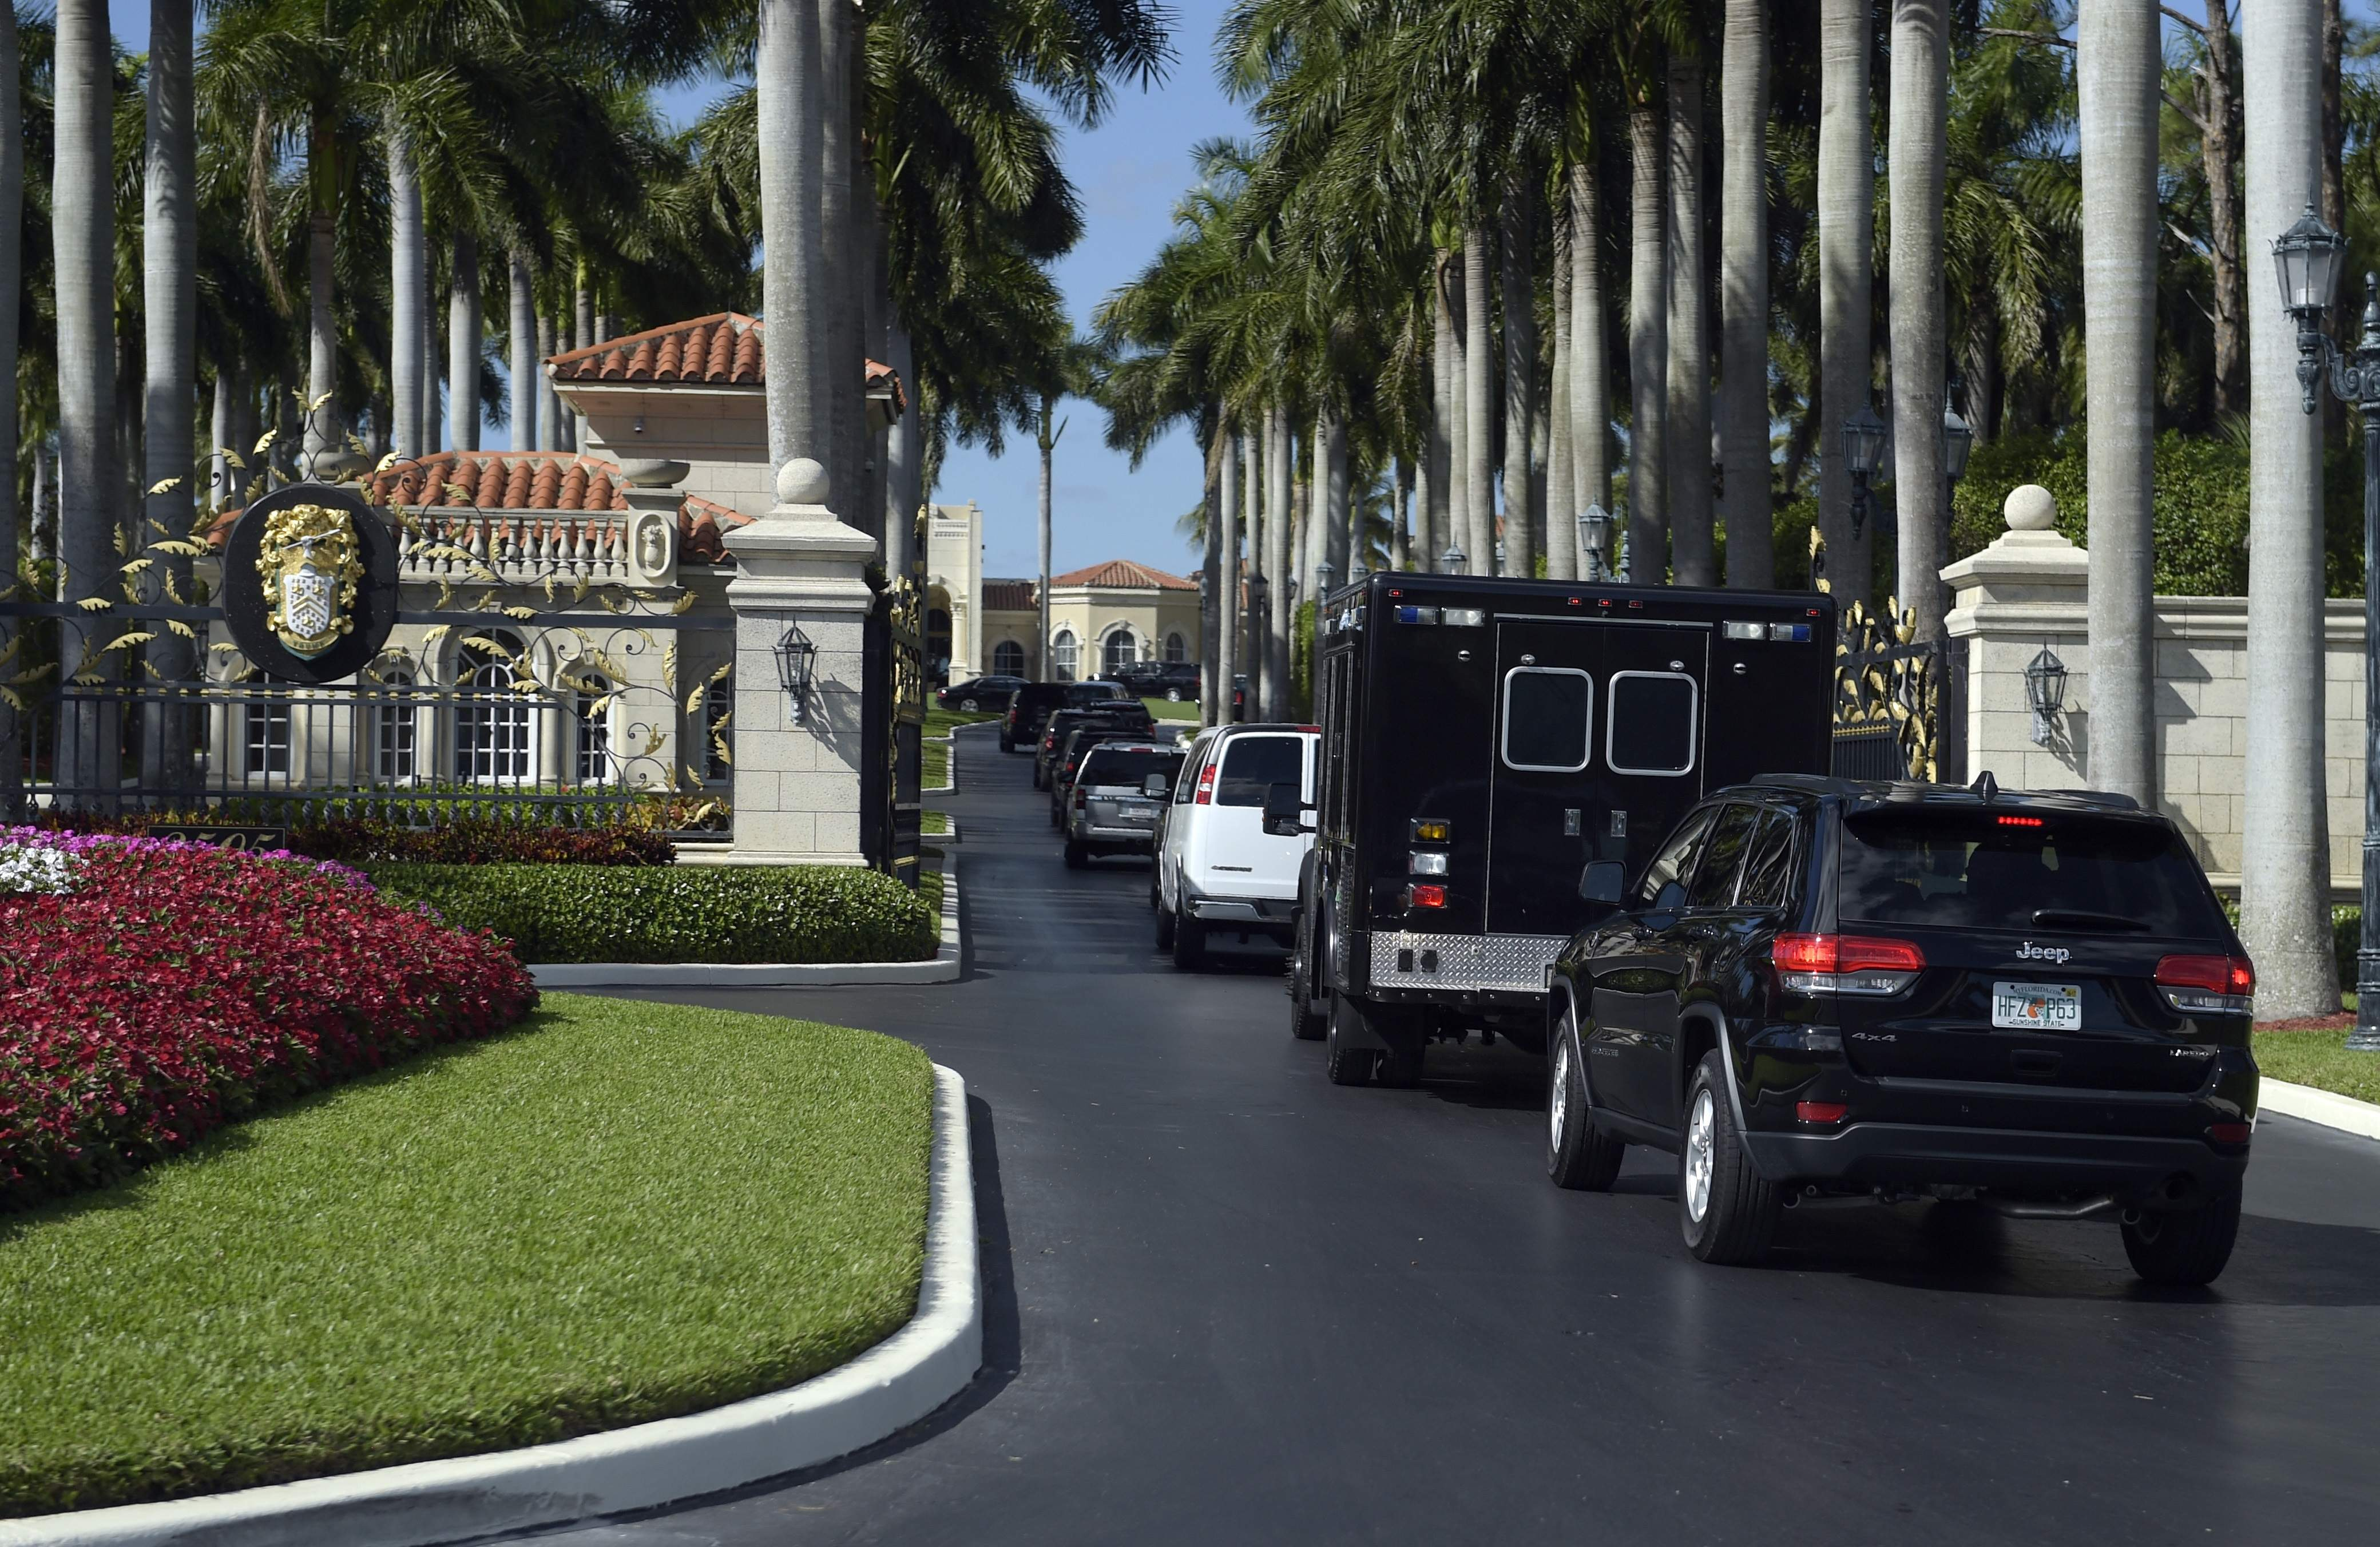 DAY 23 - In this Feb. 11, 2017, file photo, the motorcade with President Donald Trump and Japanese Prime Minister Shinzo Abe, arrives at Trump International Golf Club in West Palm Beach, Fla. The president was in Mar-a-Lago for the weekend and had no public events on his schedule for day 23 and was not photographed. (AP Photo/Susan Walsh, File)